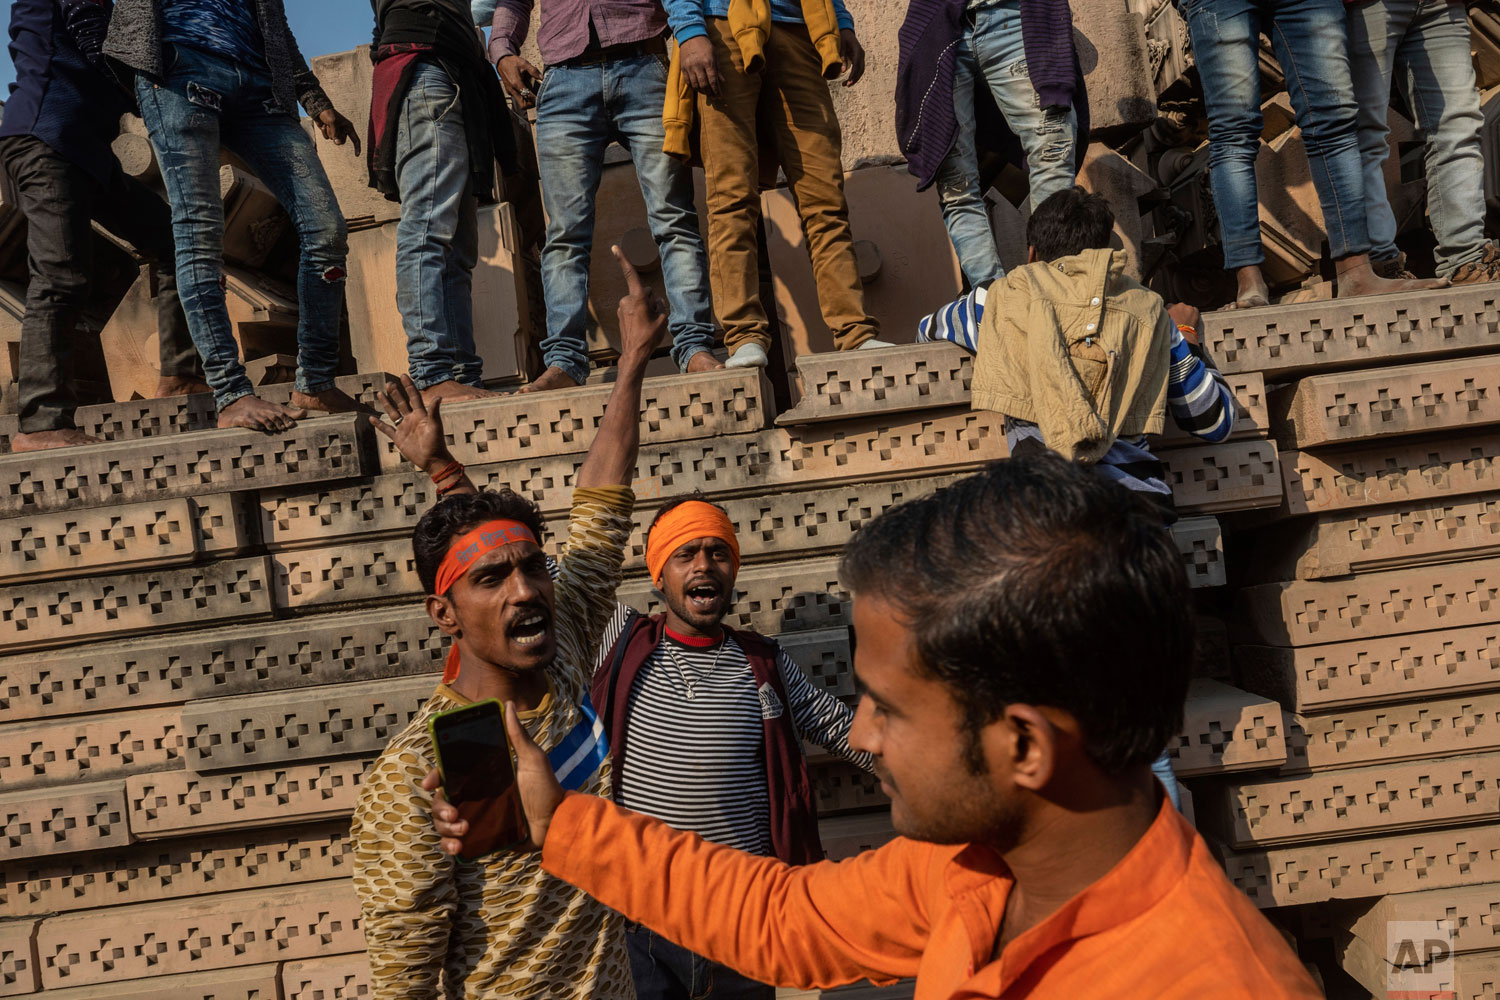 In this Sunday, Nov. 25, 2018 photo, Hindu hardliners gather next to building materials to be assembled in a temple dedicated to Hindu god Ram in Ayodhya, Uttar Pradesh, India. (AP Photo/Bernat Armangue)